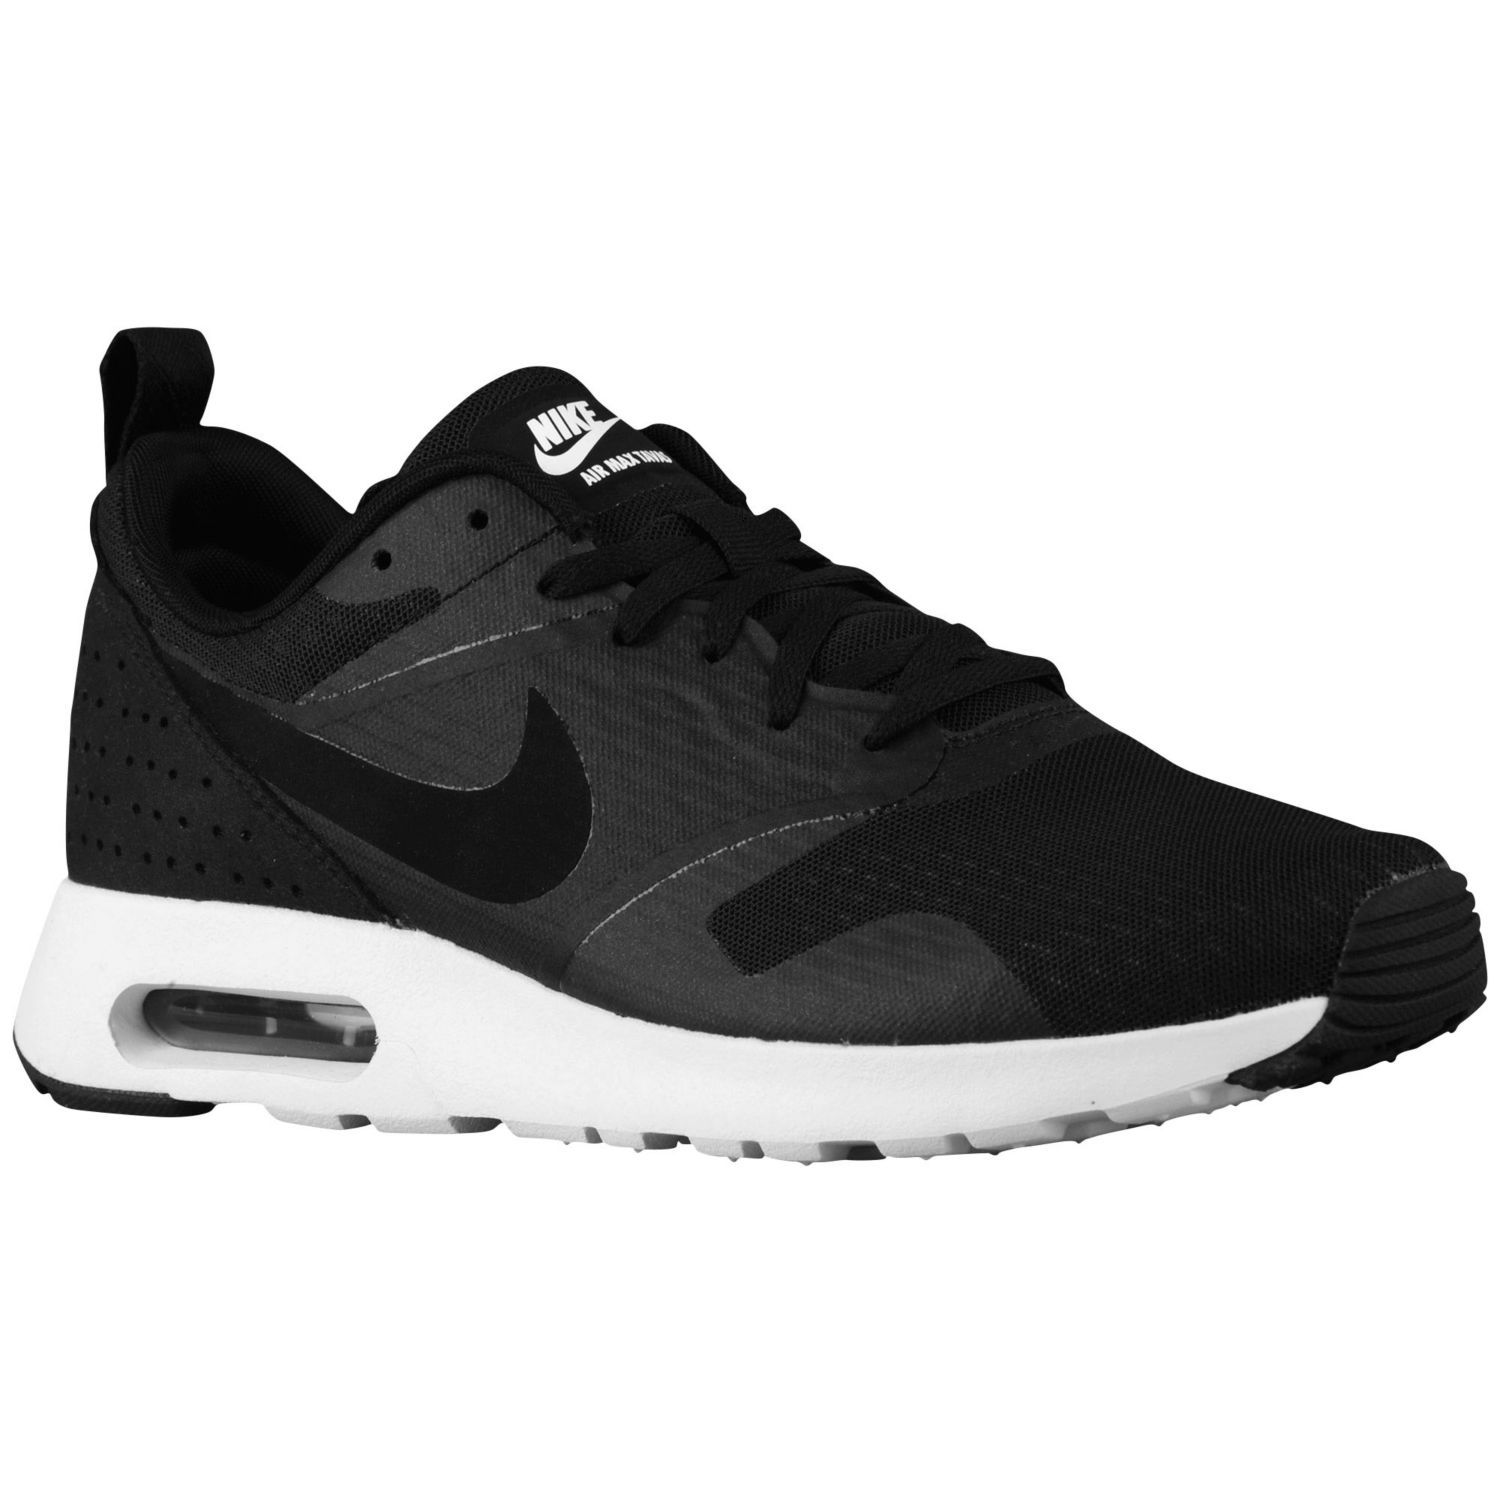 hot sale online 13891 9ed53 Nike Air Max Tavas - Men s - Running - Shoes - Wolf Grey Photo Blue Hot  Lava Game Royal